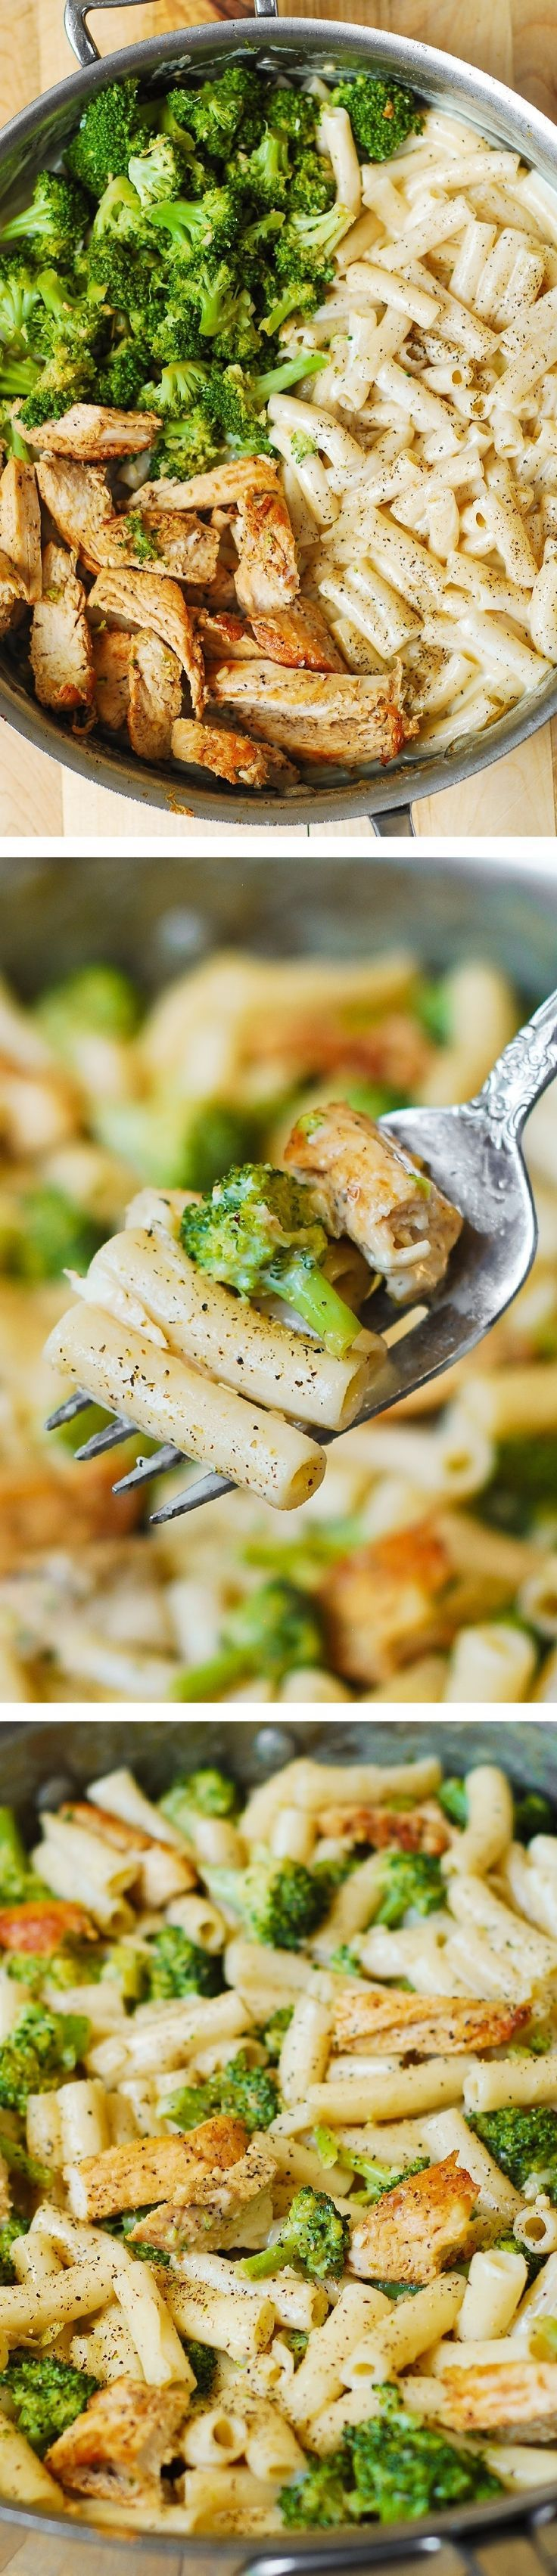 Delicious, creamy chicken breast, broccoli, garlic in a simple, homemade cream sauce. alfredo pasta!